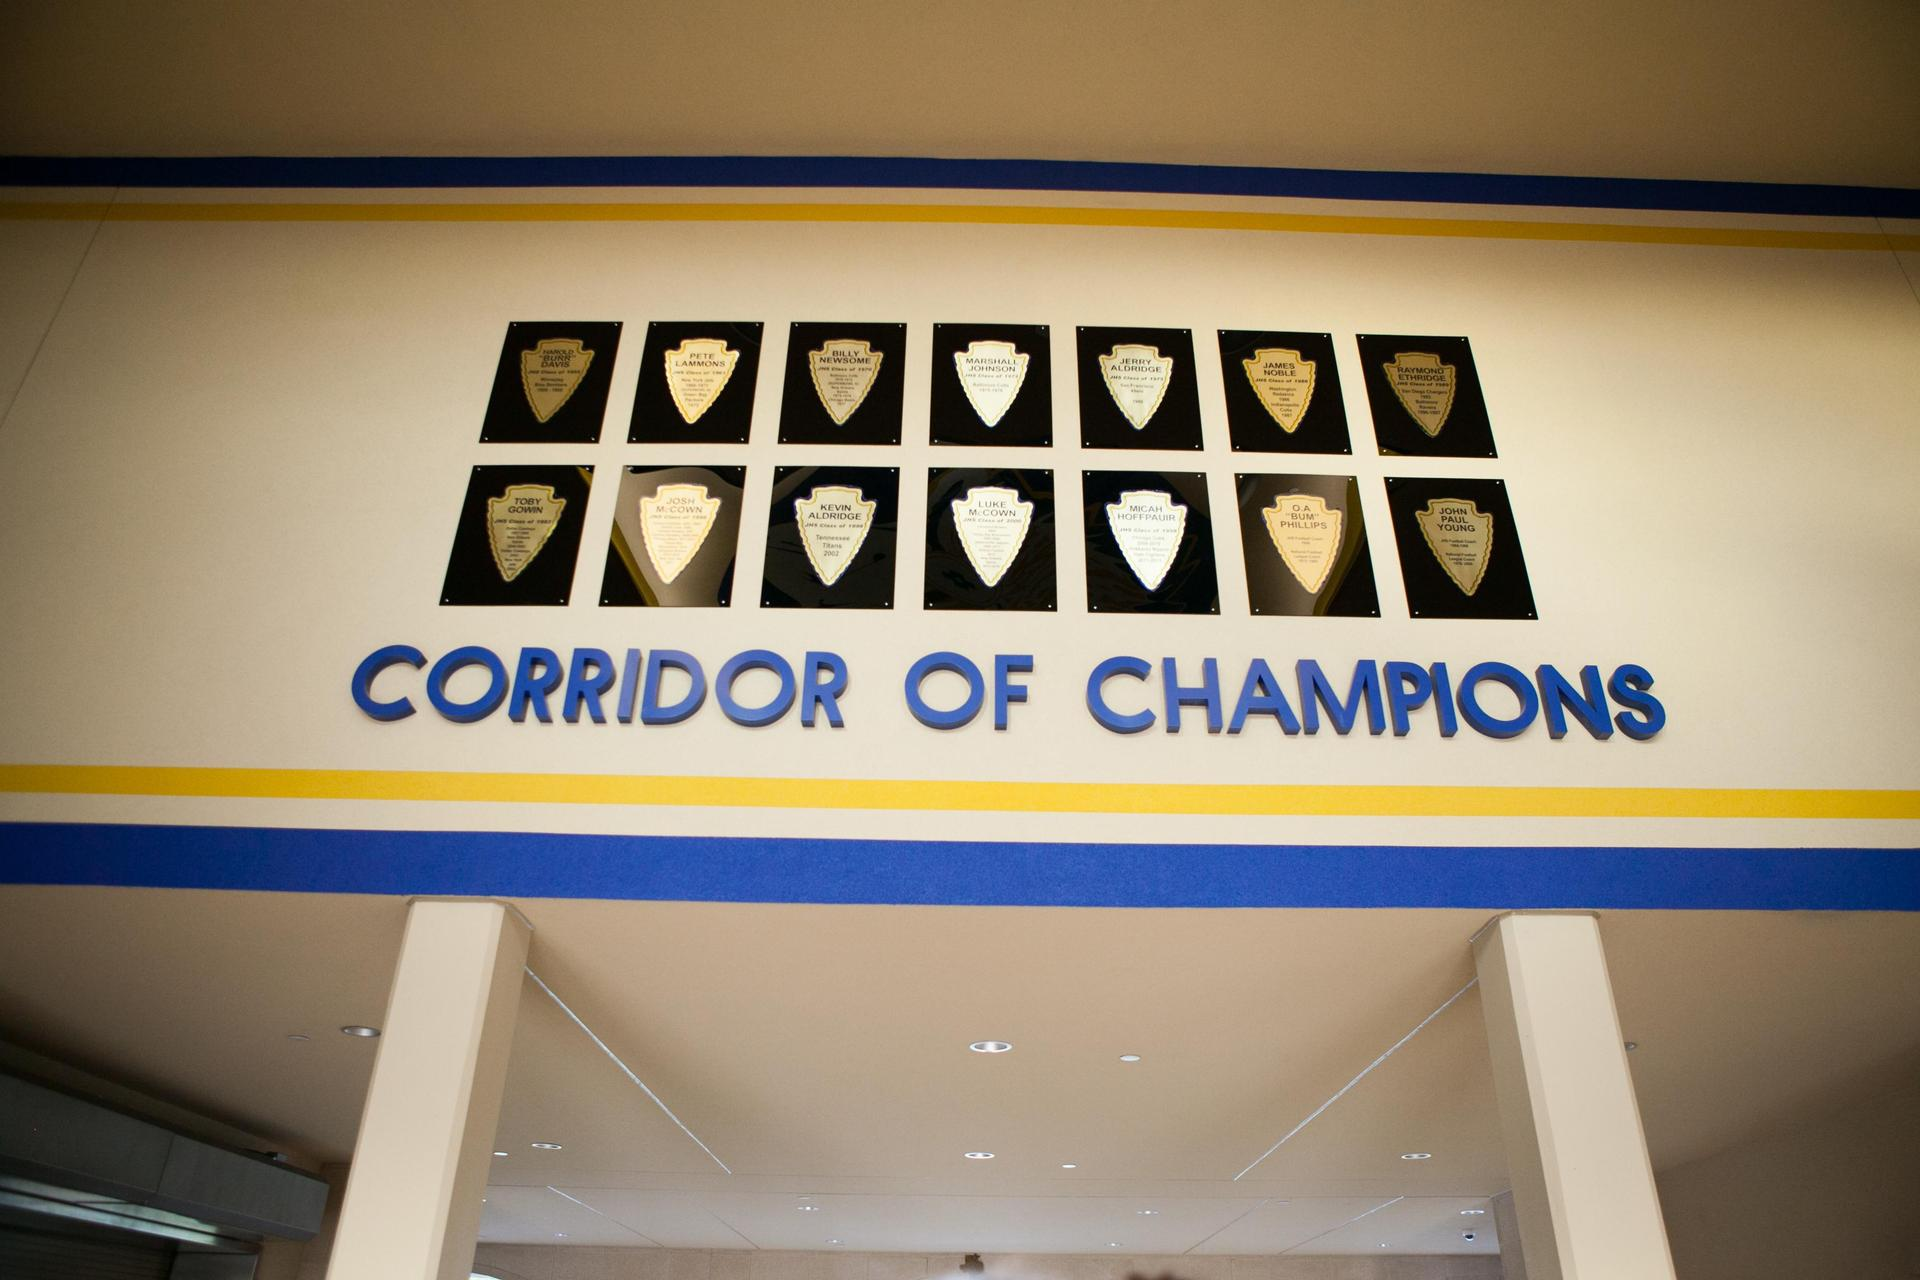 wall of champions in the stadium